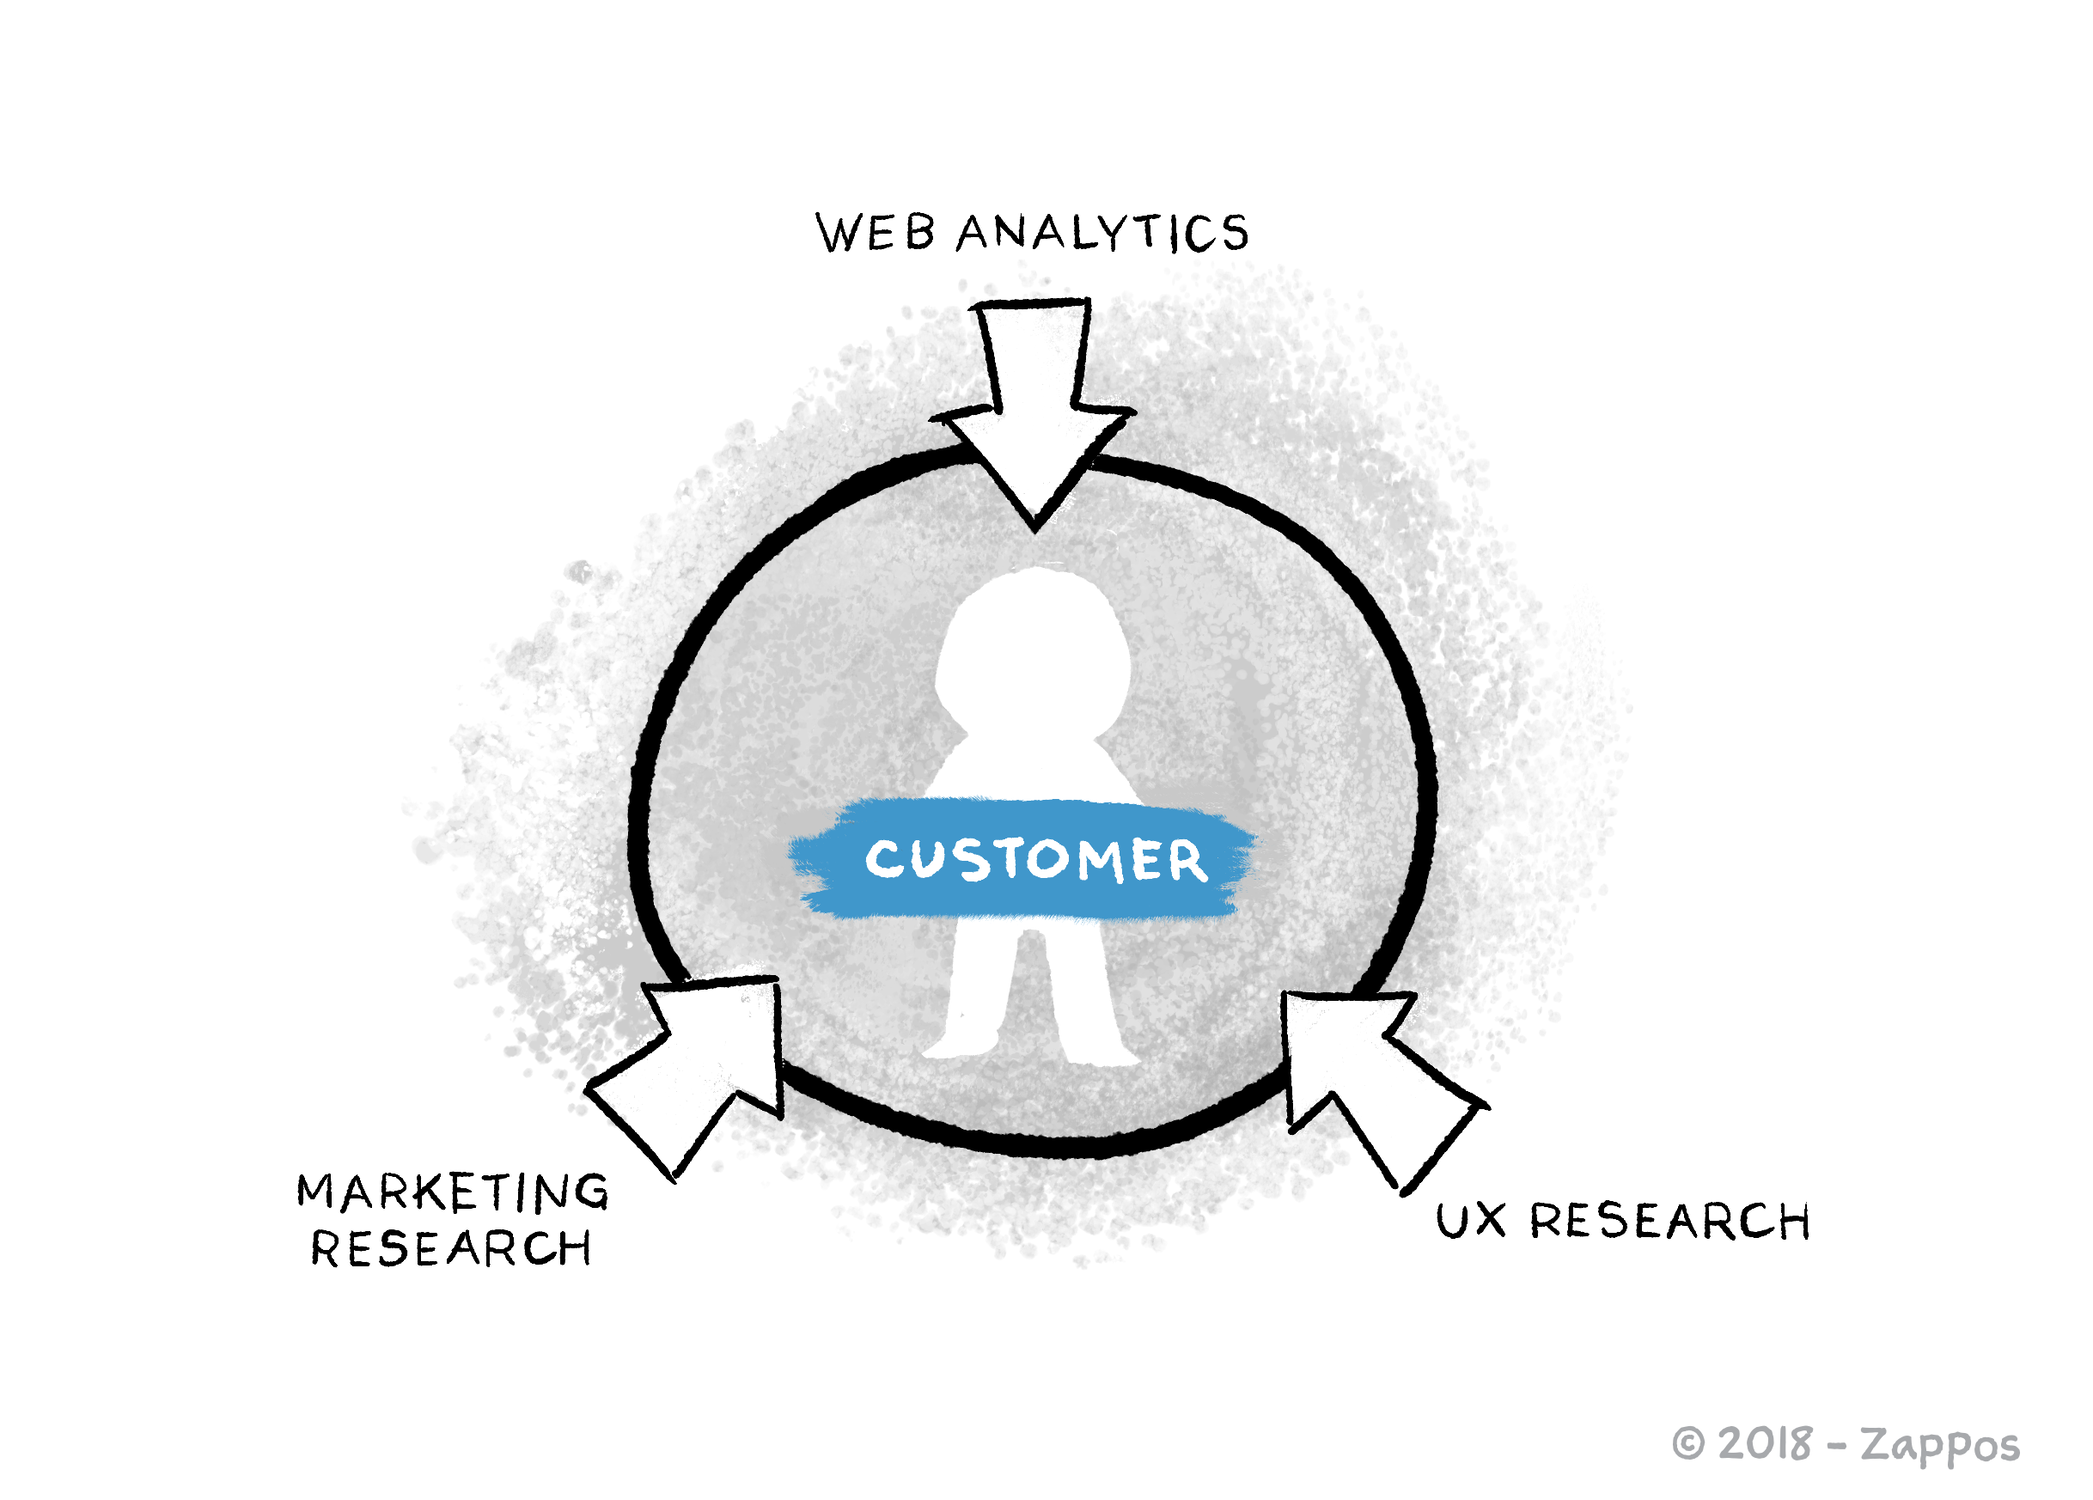 customer-centric research